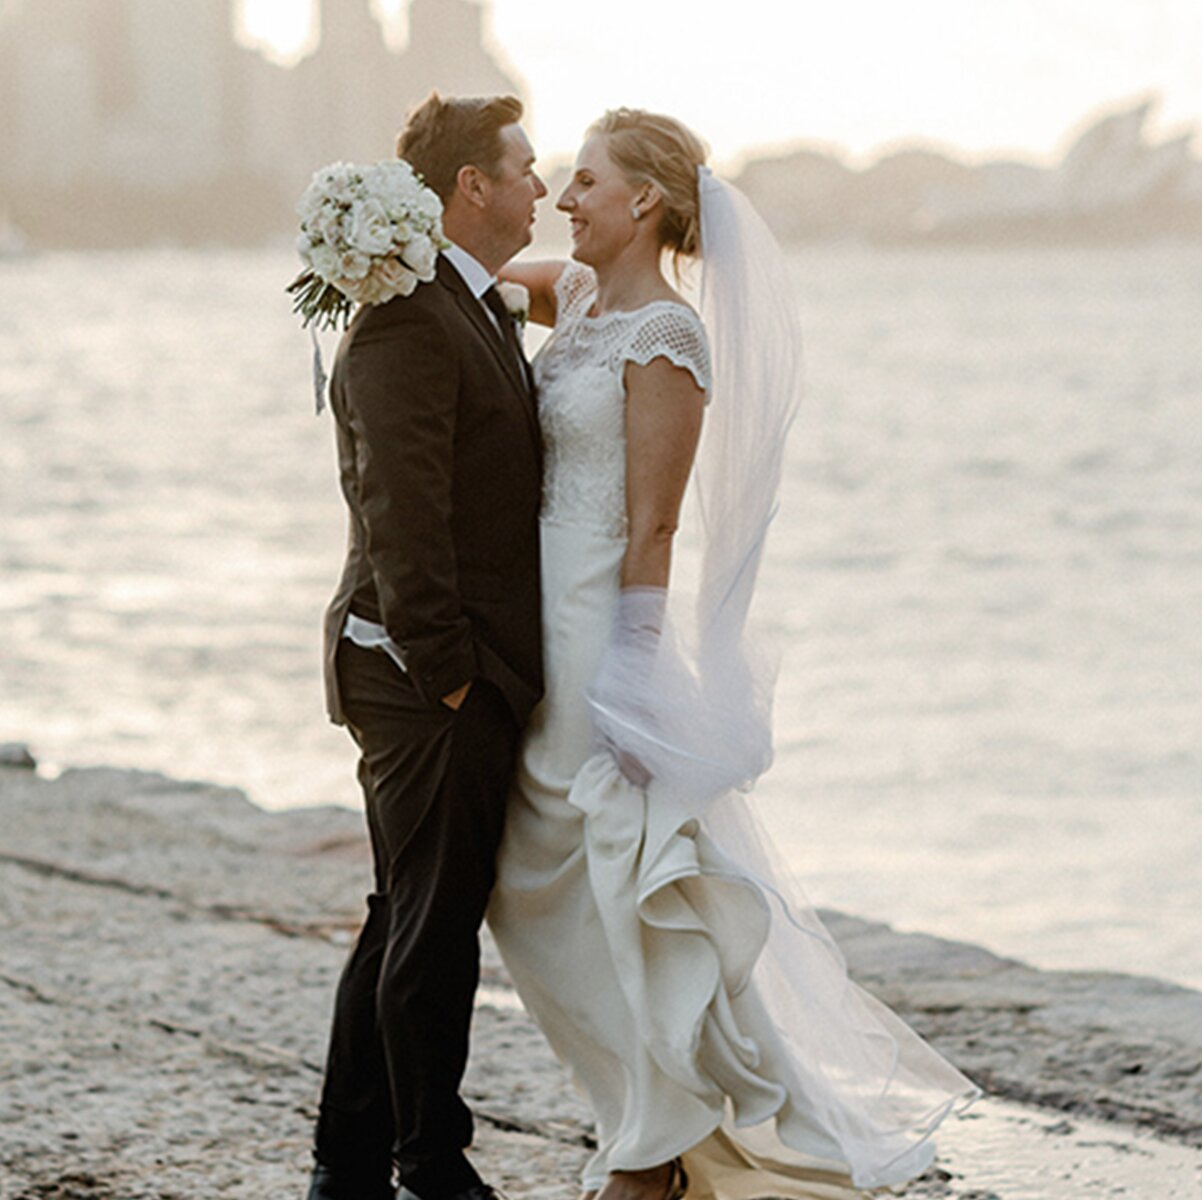 sydney wedding packages flowers price roses white